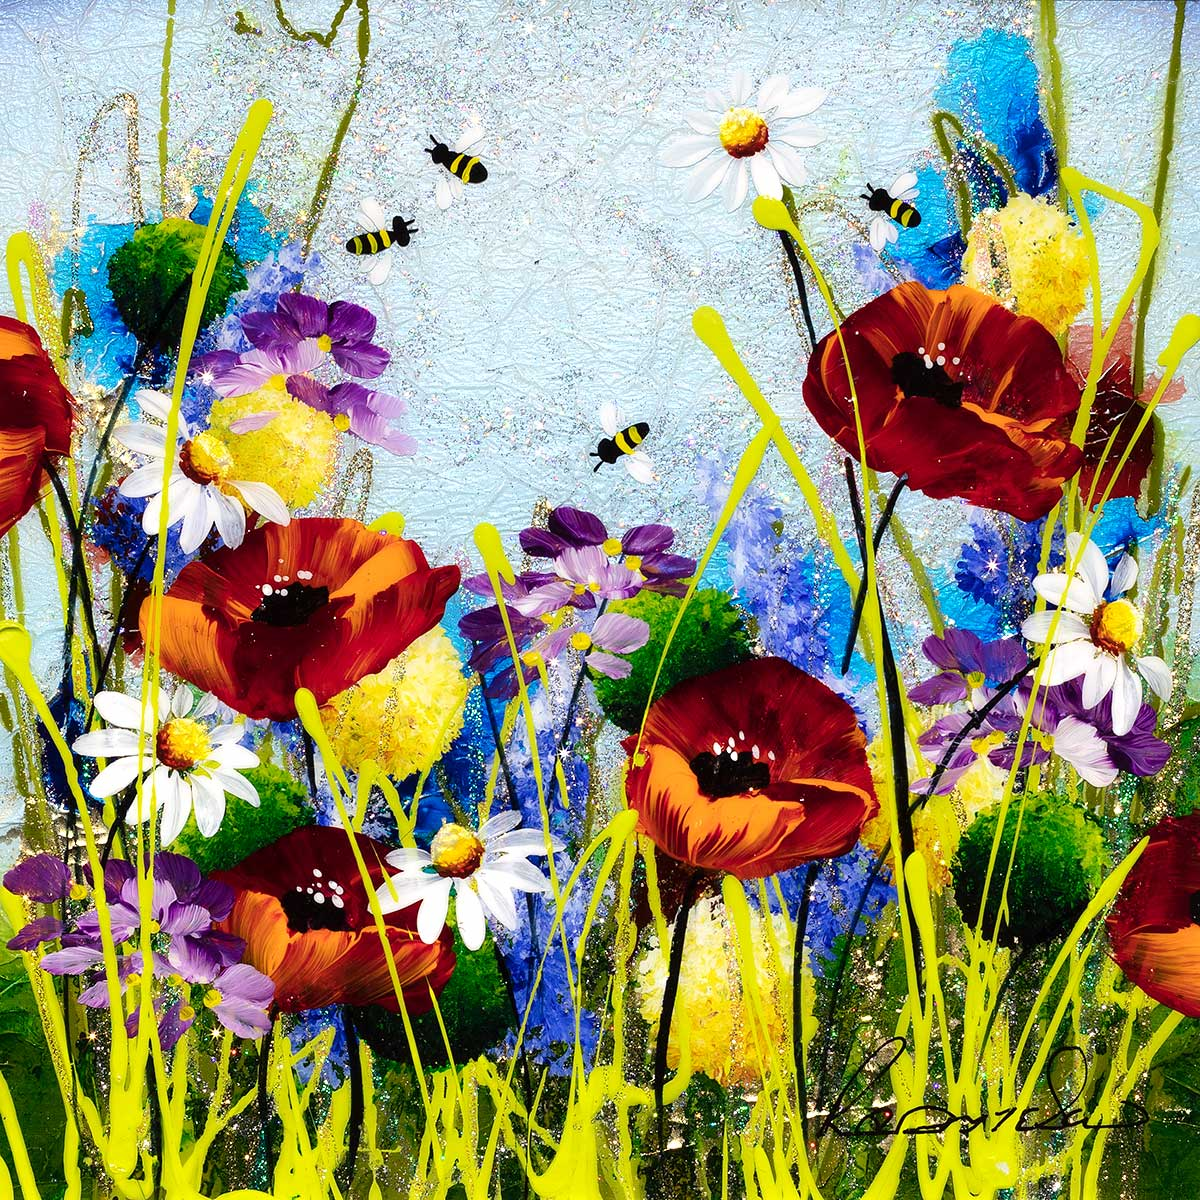 In The Meadow I - Original - SOLD